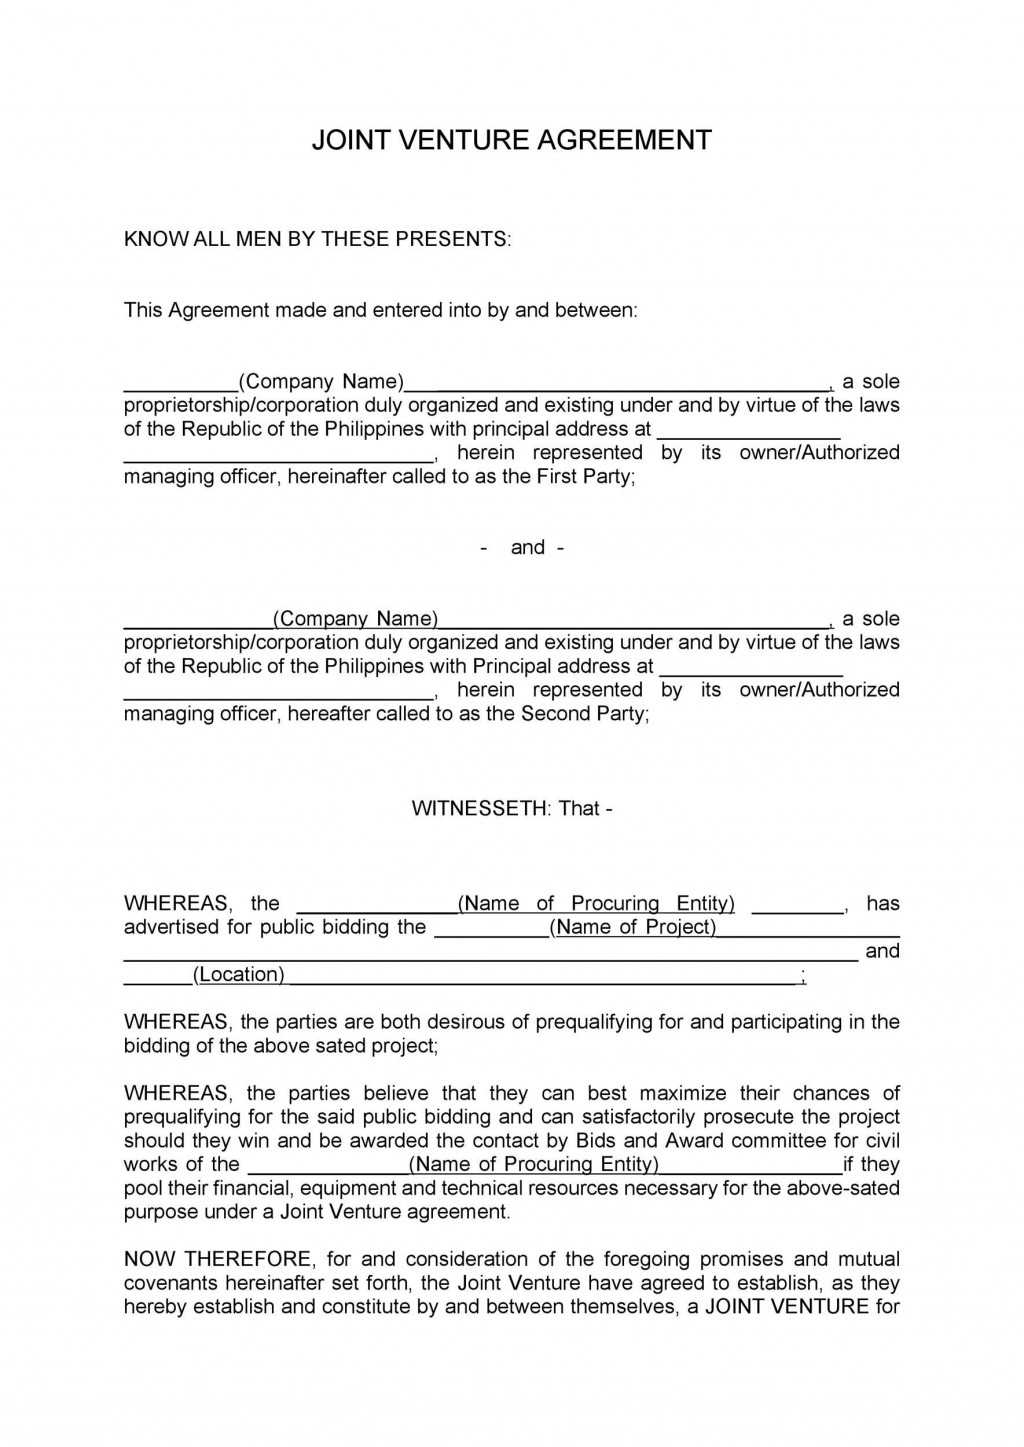 006 Frightening Property Management Contract Sample Philippine Concept Large